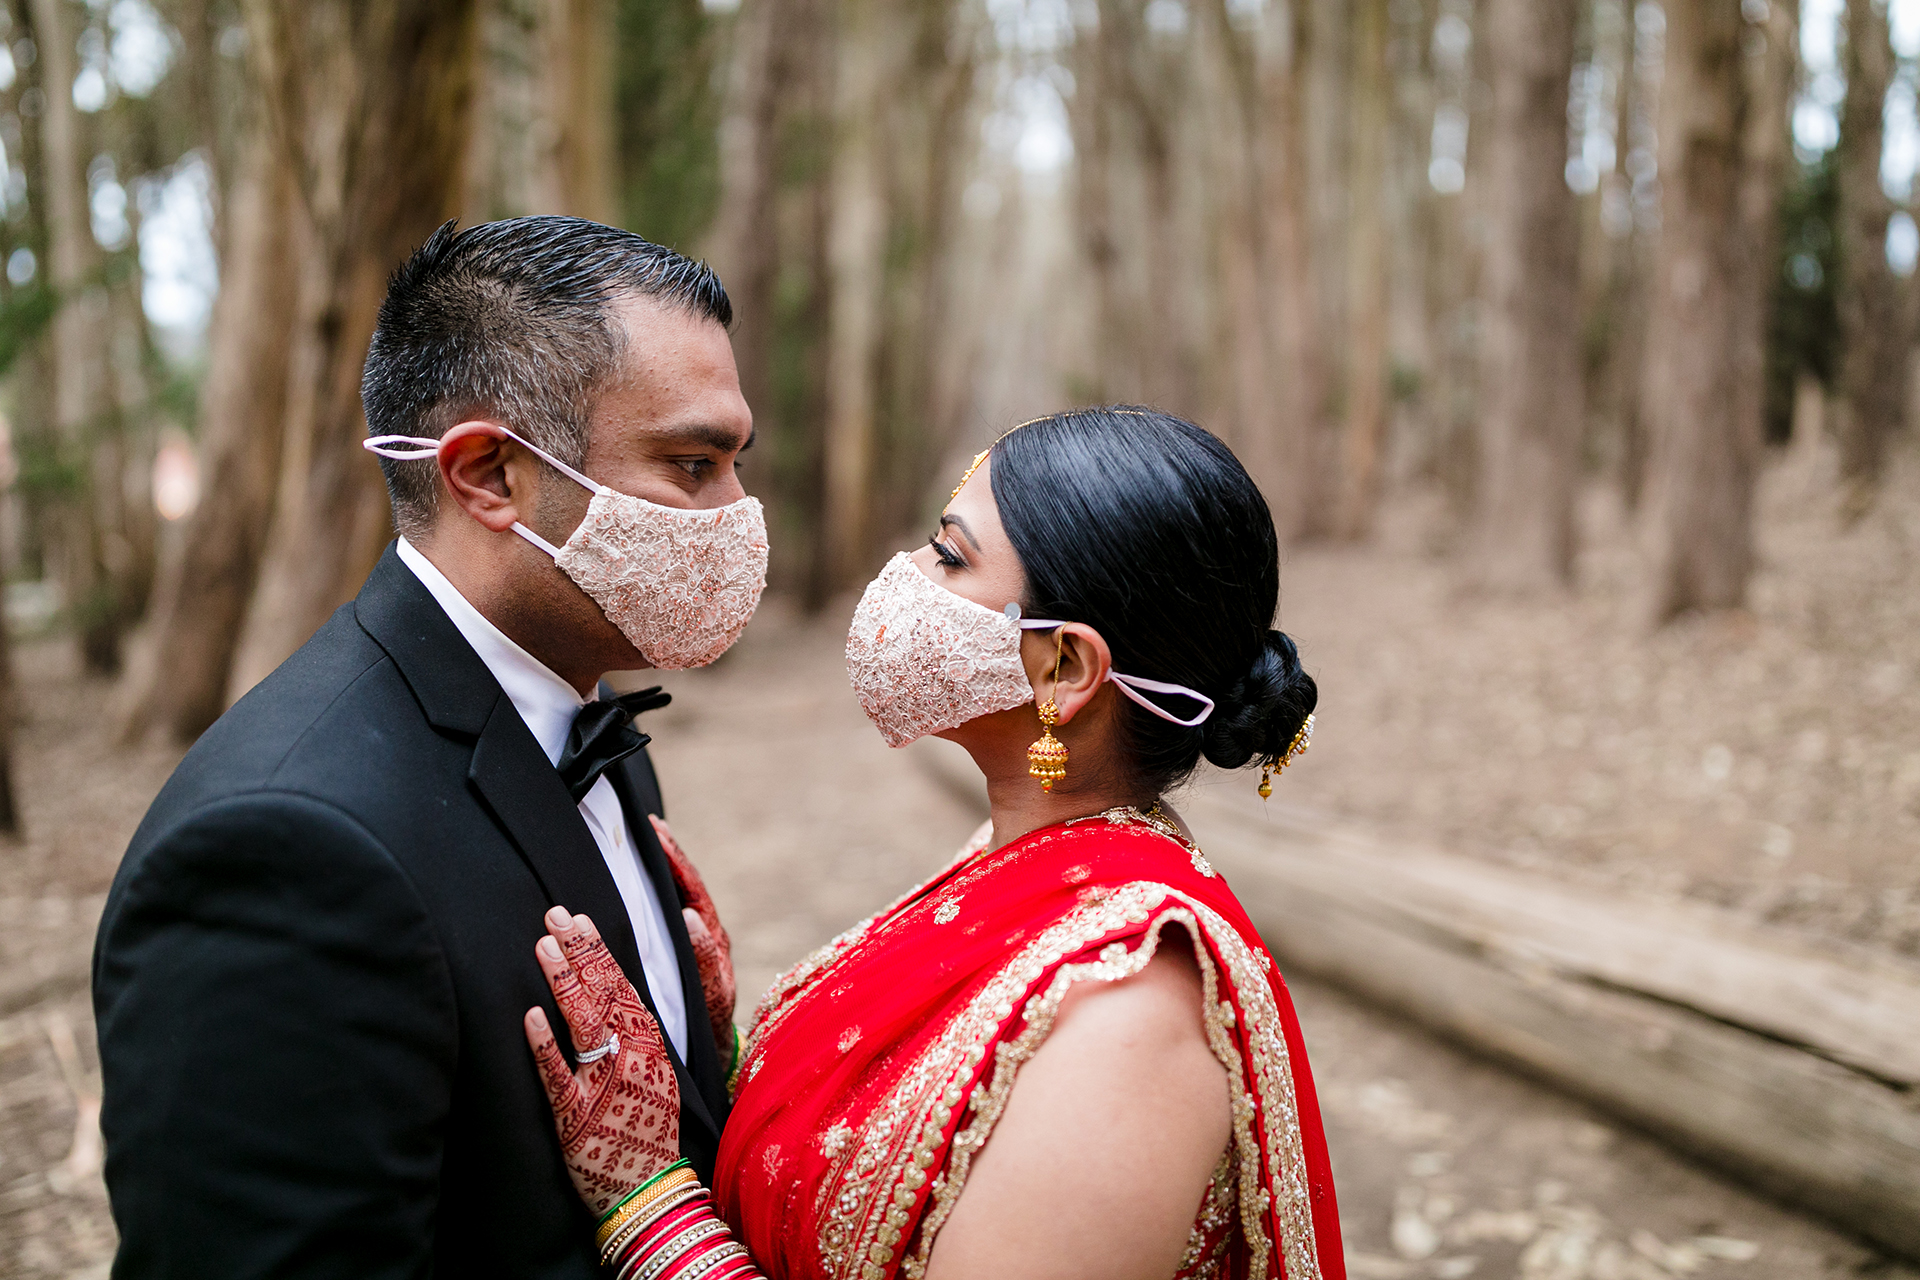 Golden Gate Overlook - Presidio Wedding Photographer | Pandemic love meant that face masks were required